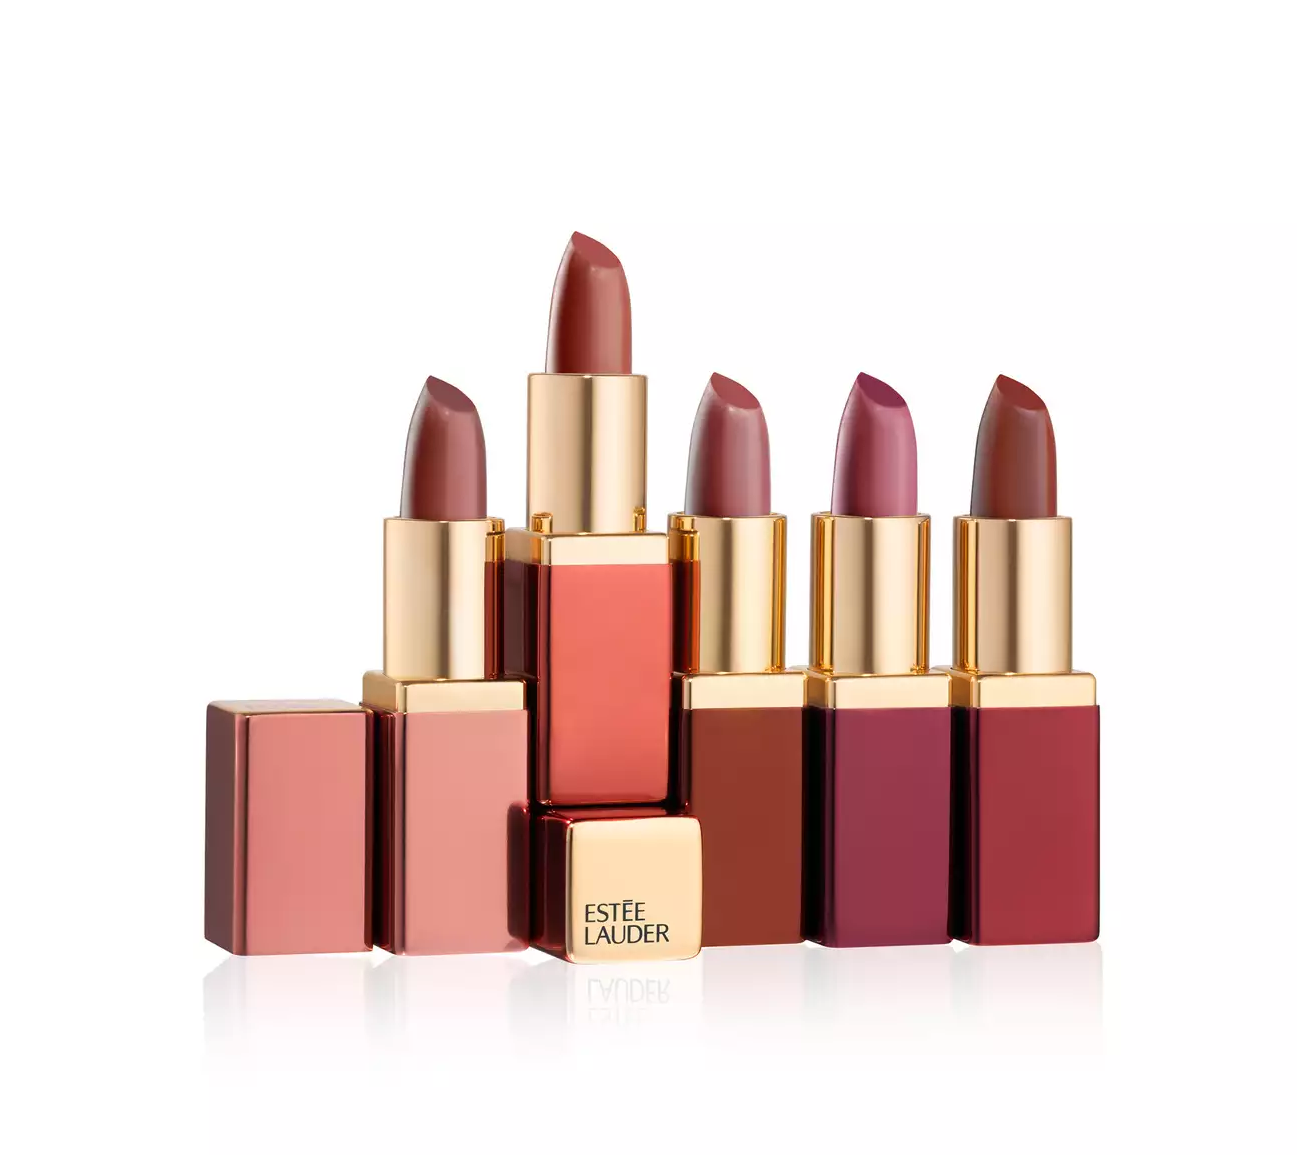 Estée Lauder Mini Winter Nudes Lipstick Gift Set